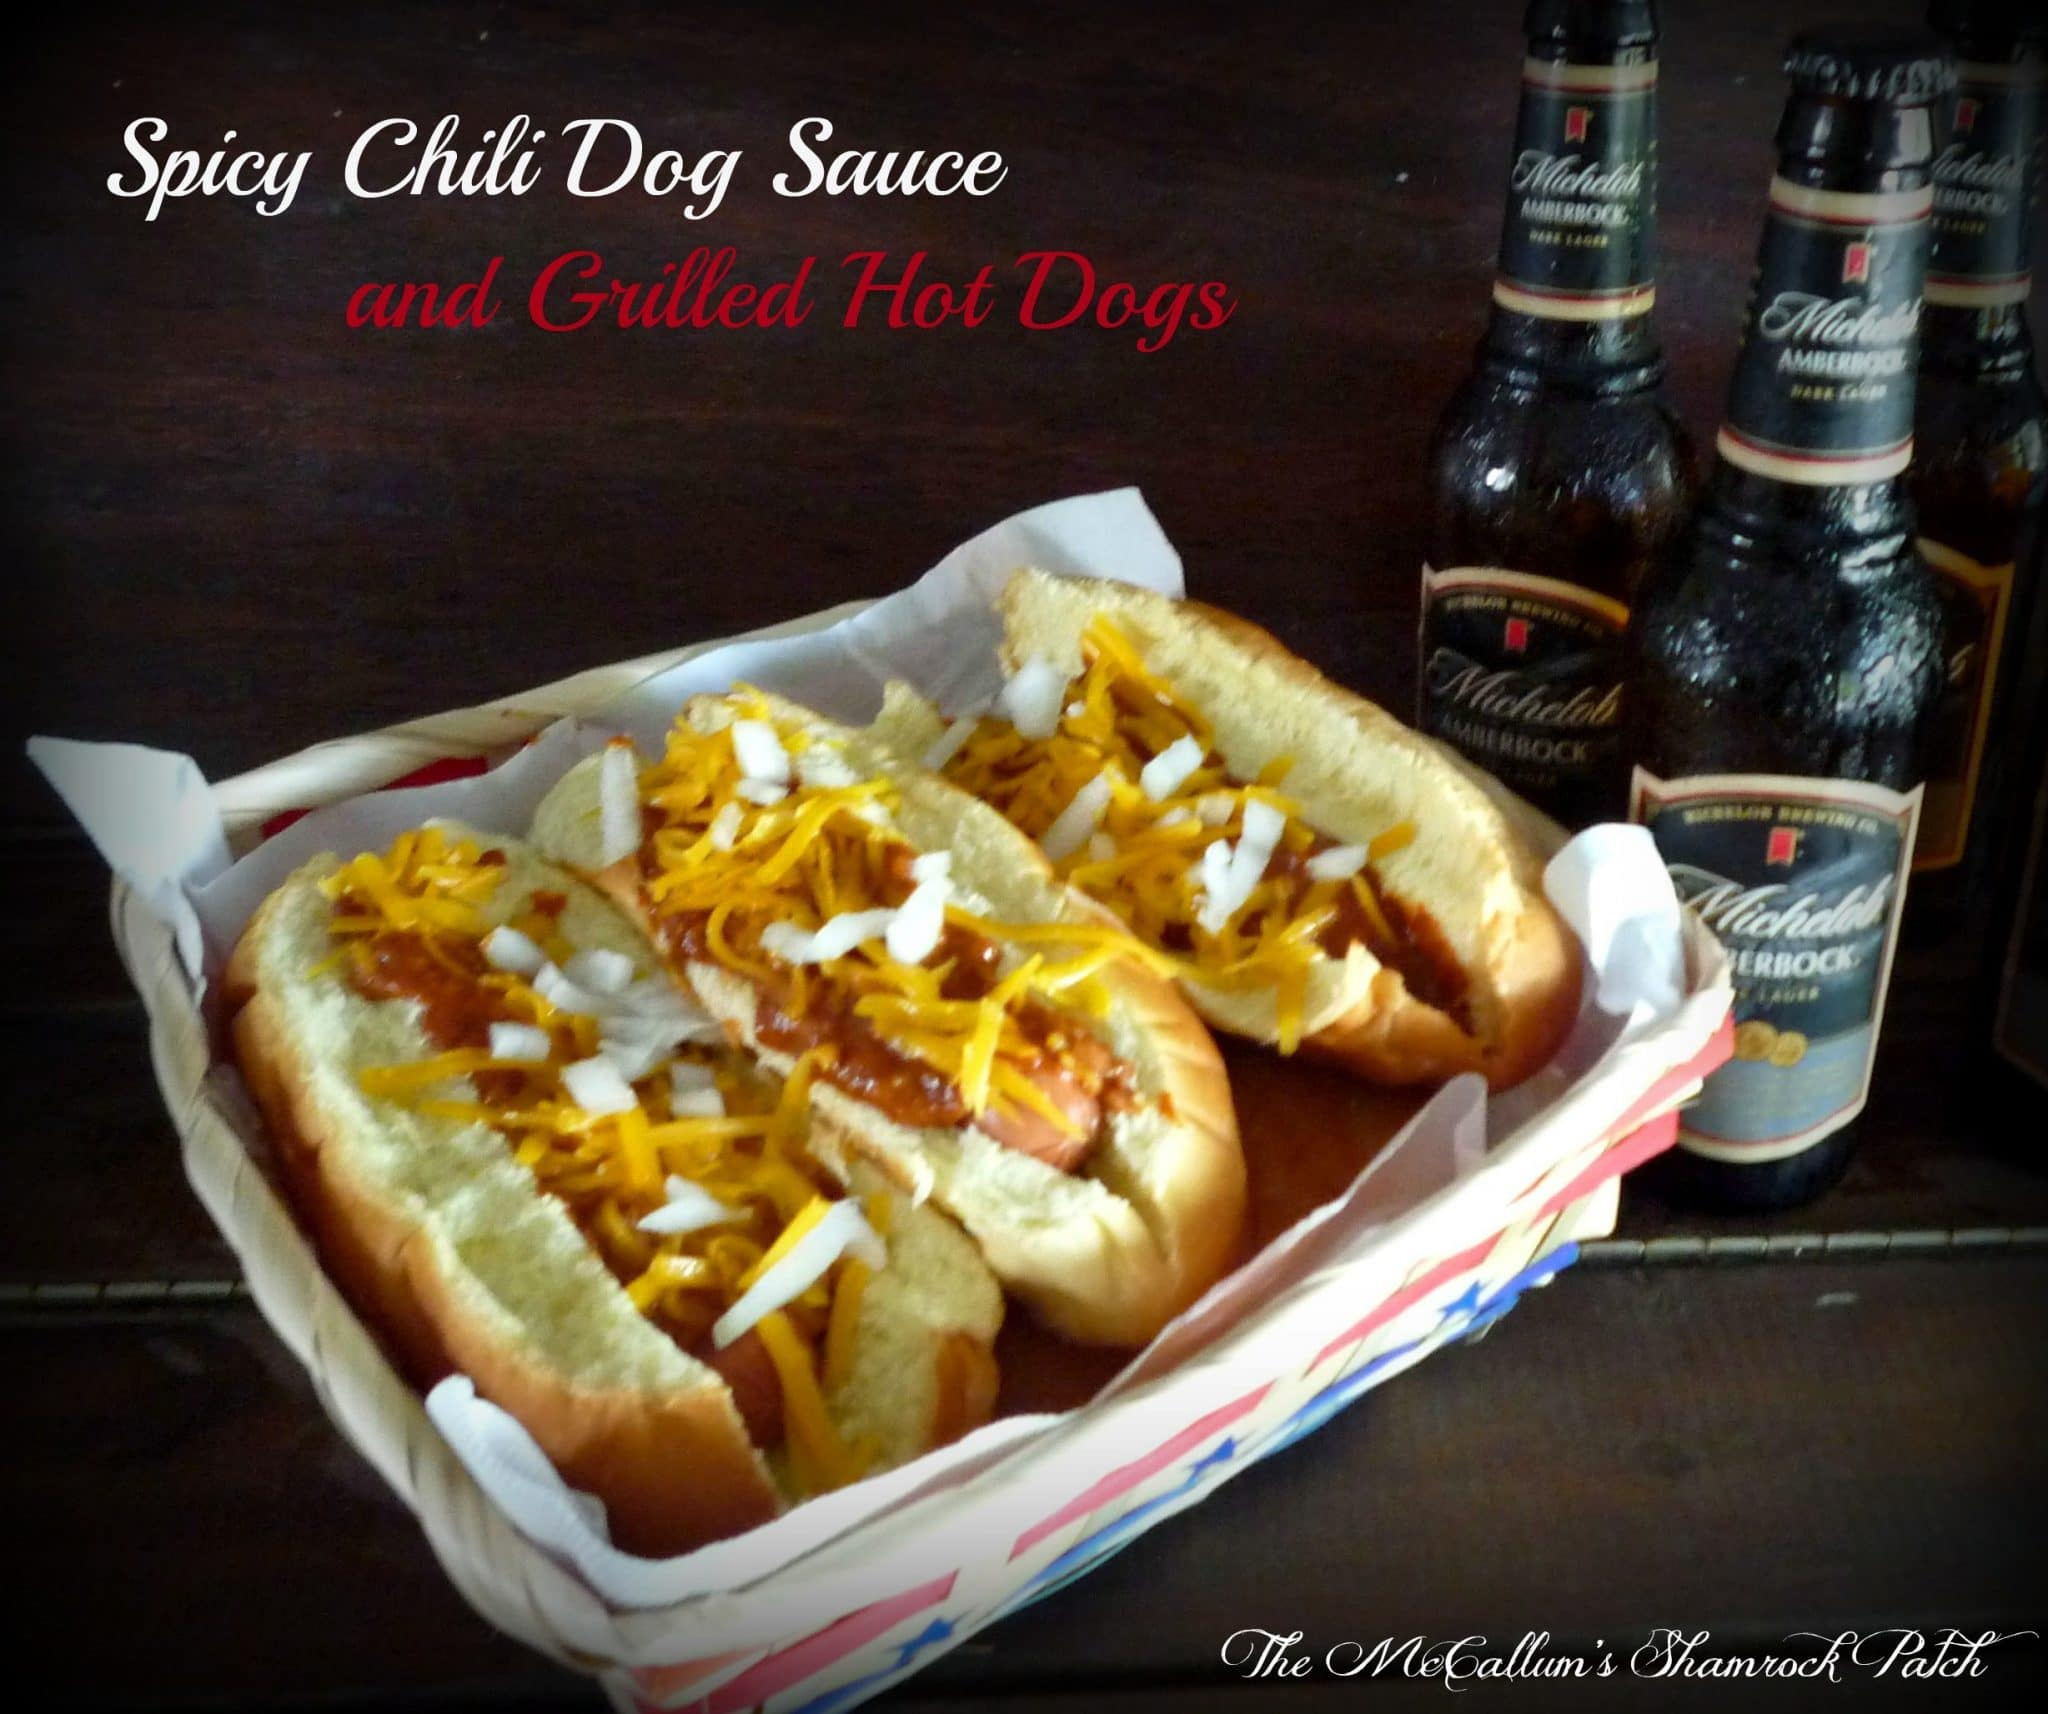 Making Hot Dogs In A Crock Pot